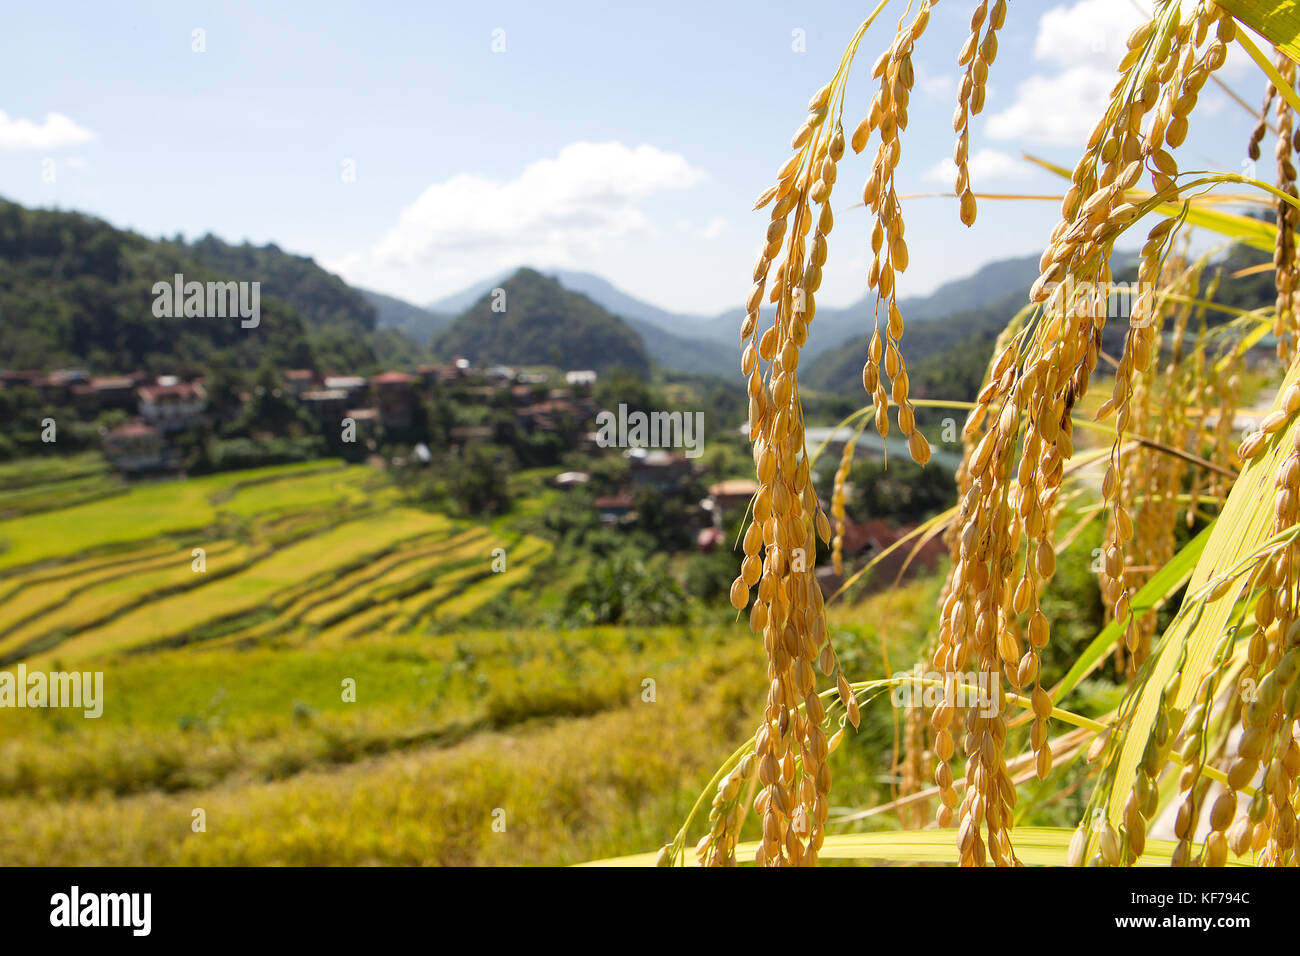 Rice growing in the area of the Hapao Rice Terraces,Banaue.Philippines - Stock Image